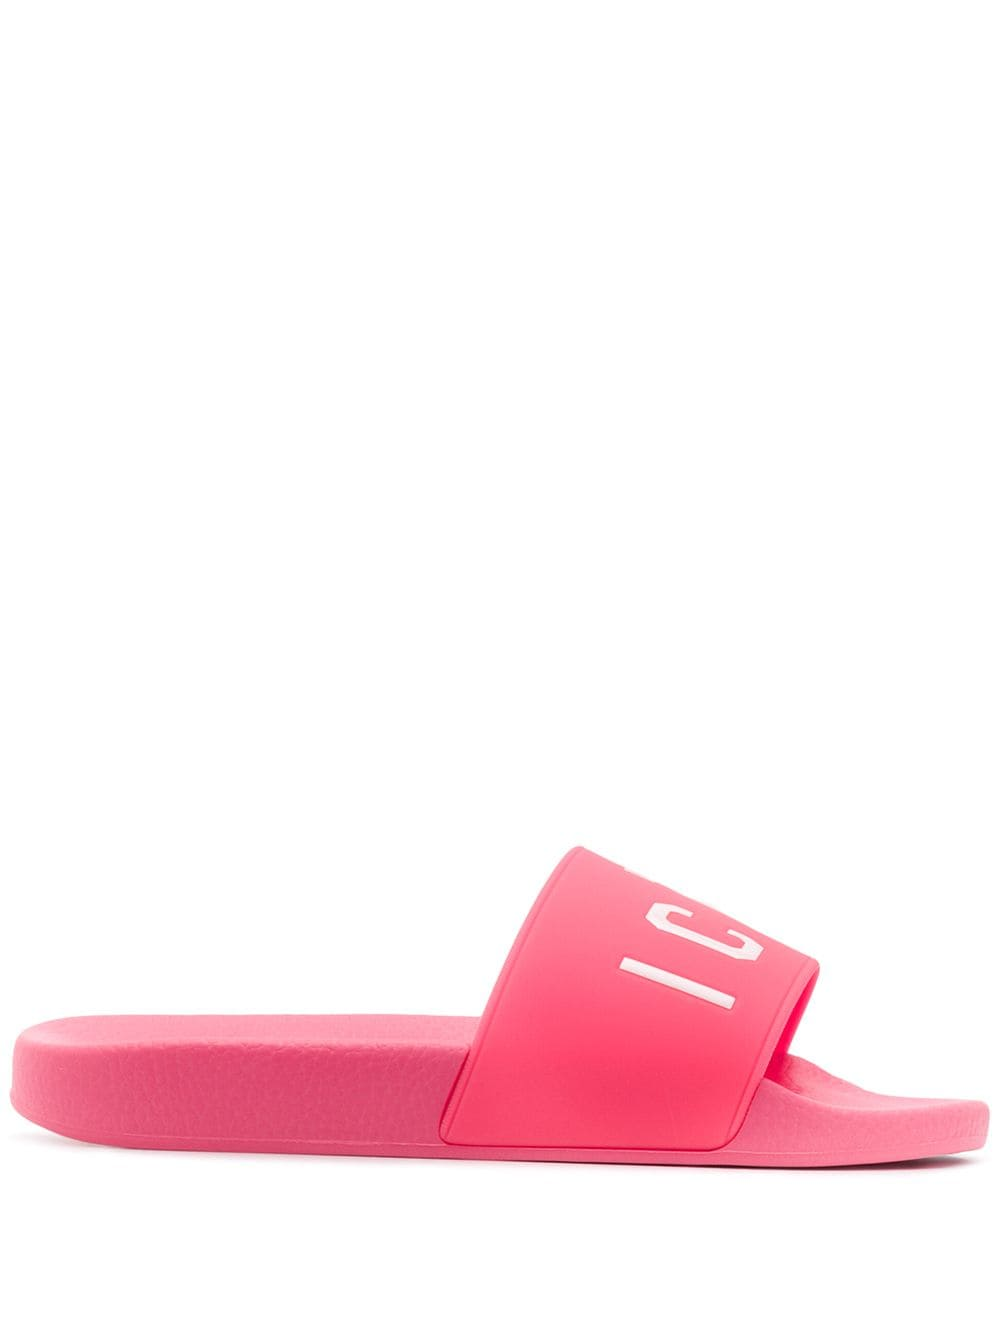 DSQUARED2 Icon Pool Sliders Pink/White